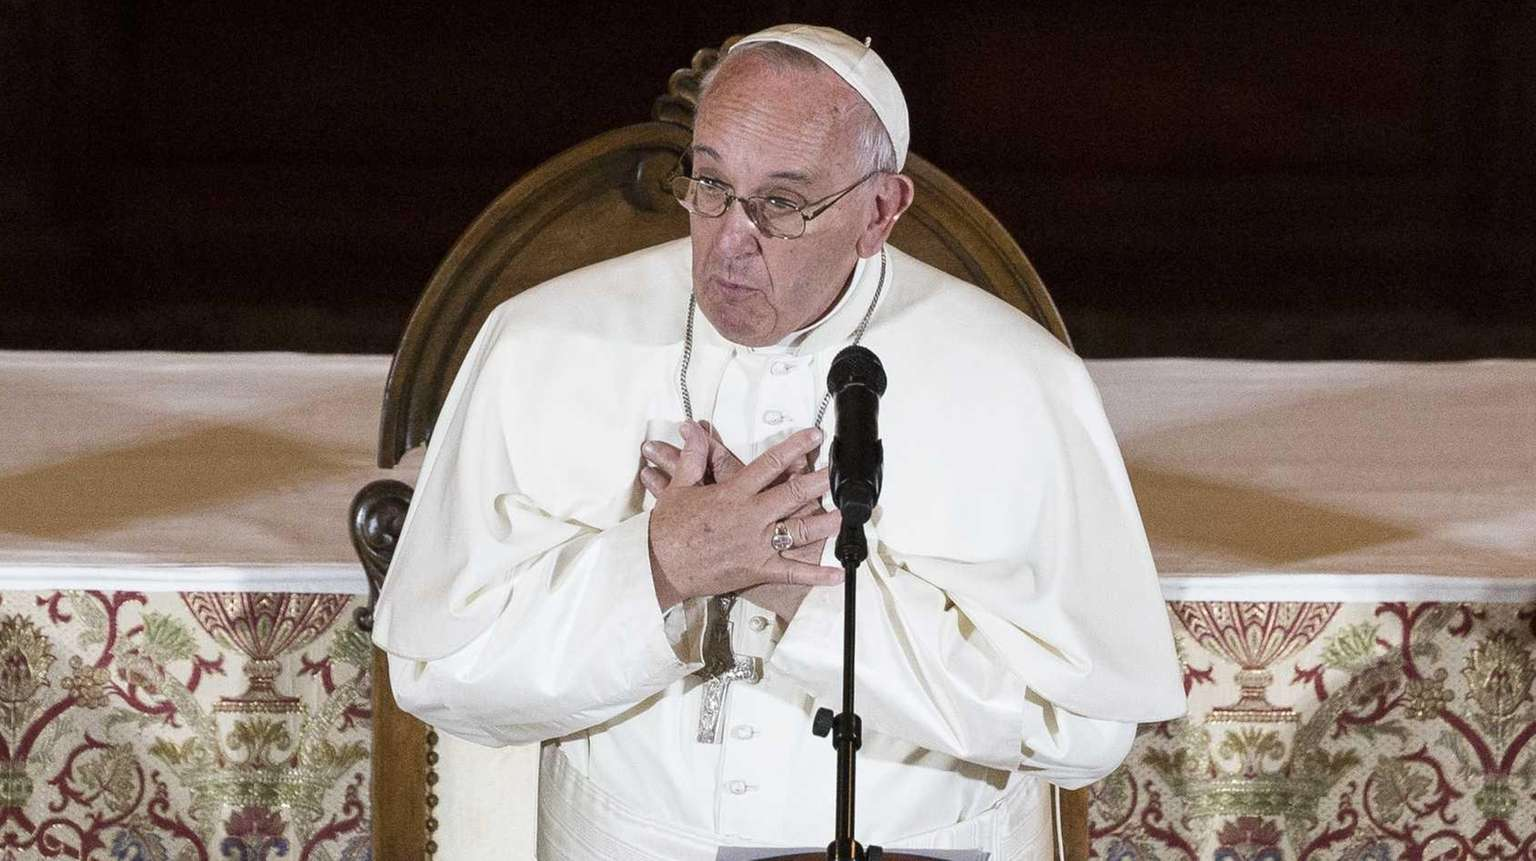 Pope Francis apologizes to sex abuse victims